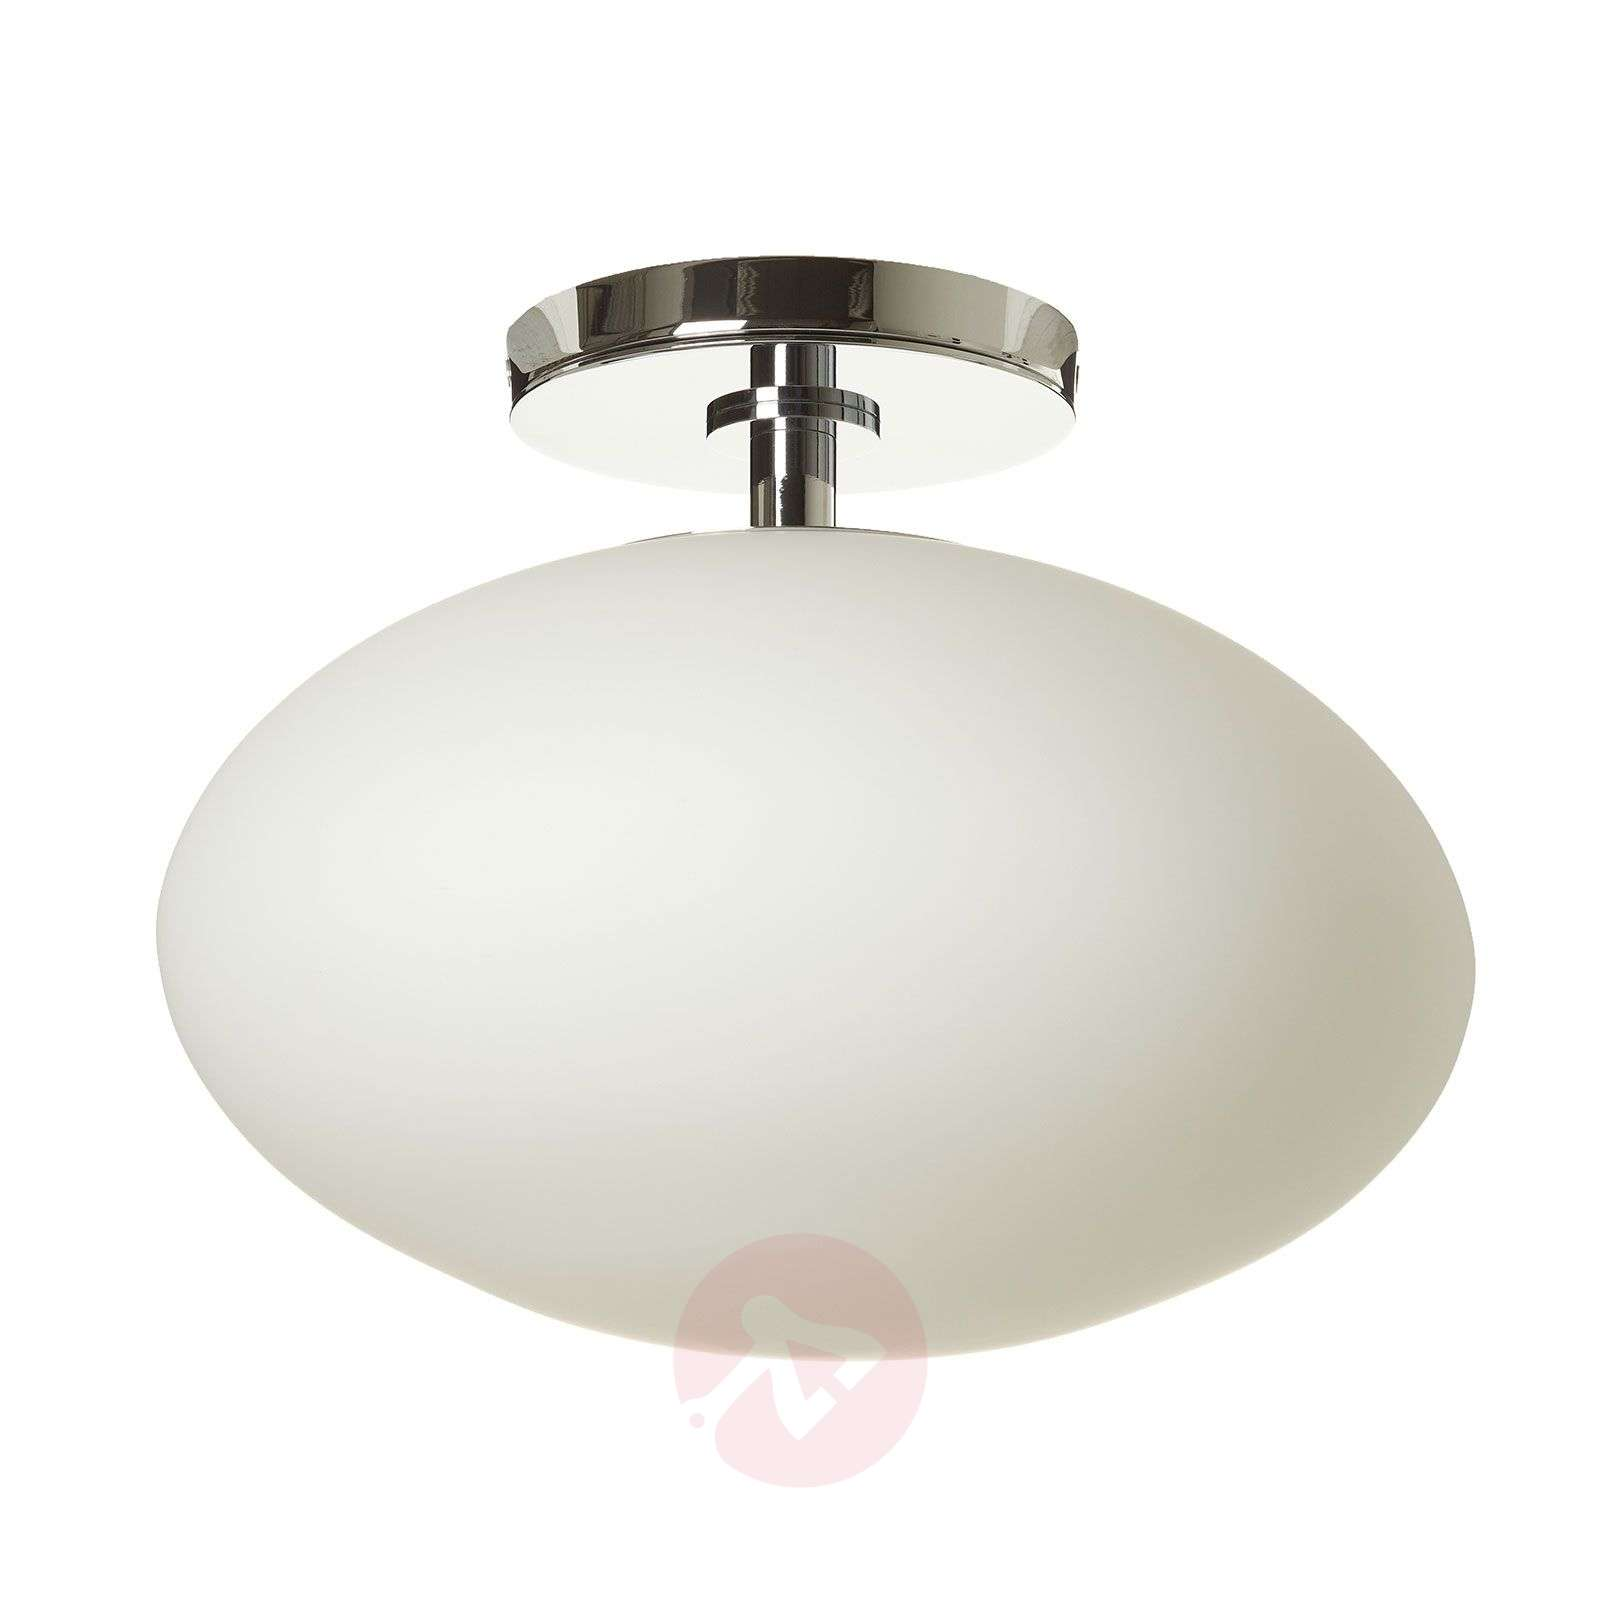 Zeppo Bathroom Ceiling Light Oval IP44-1020303-02